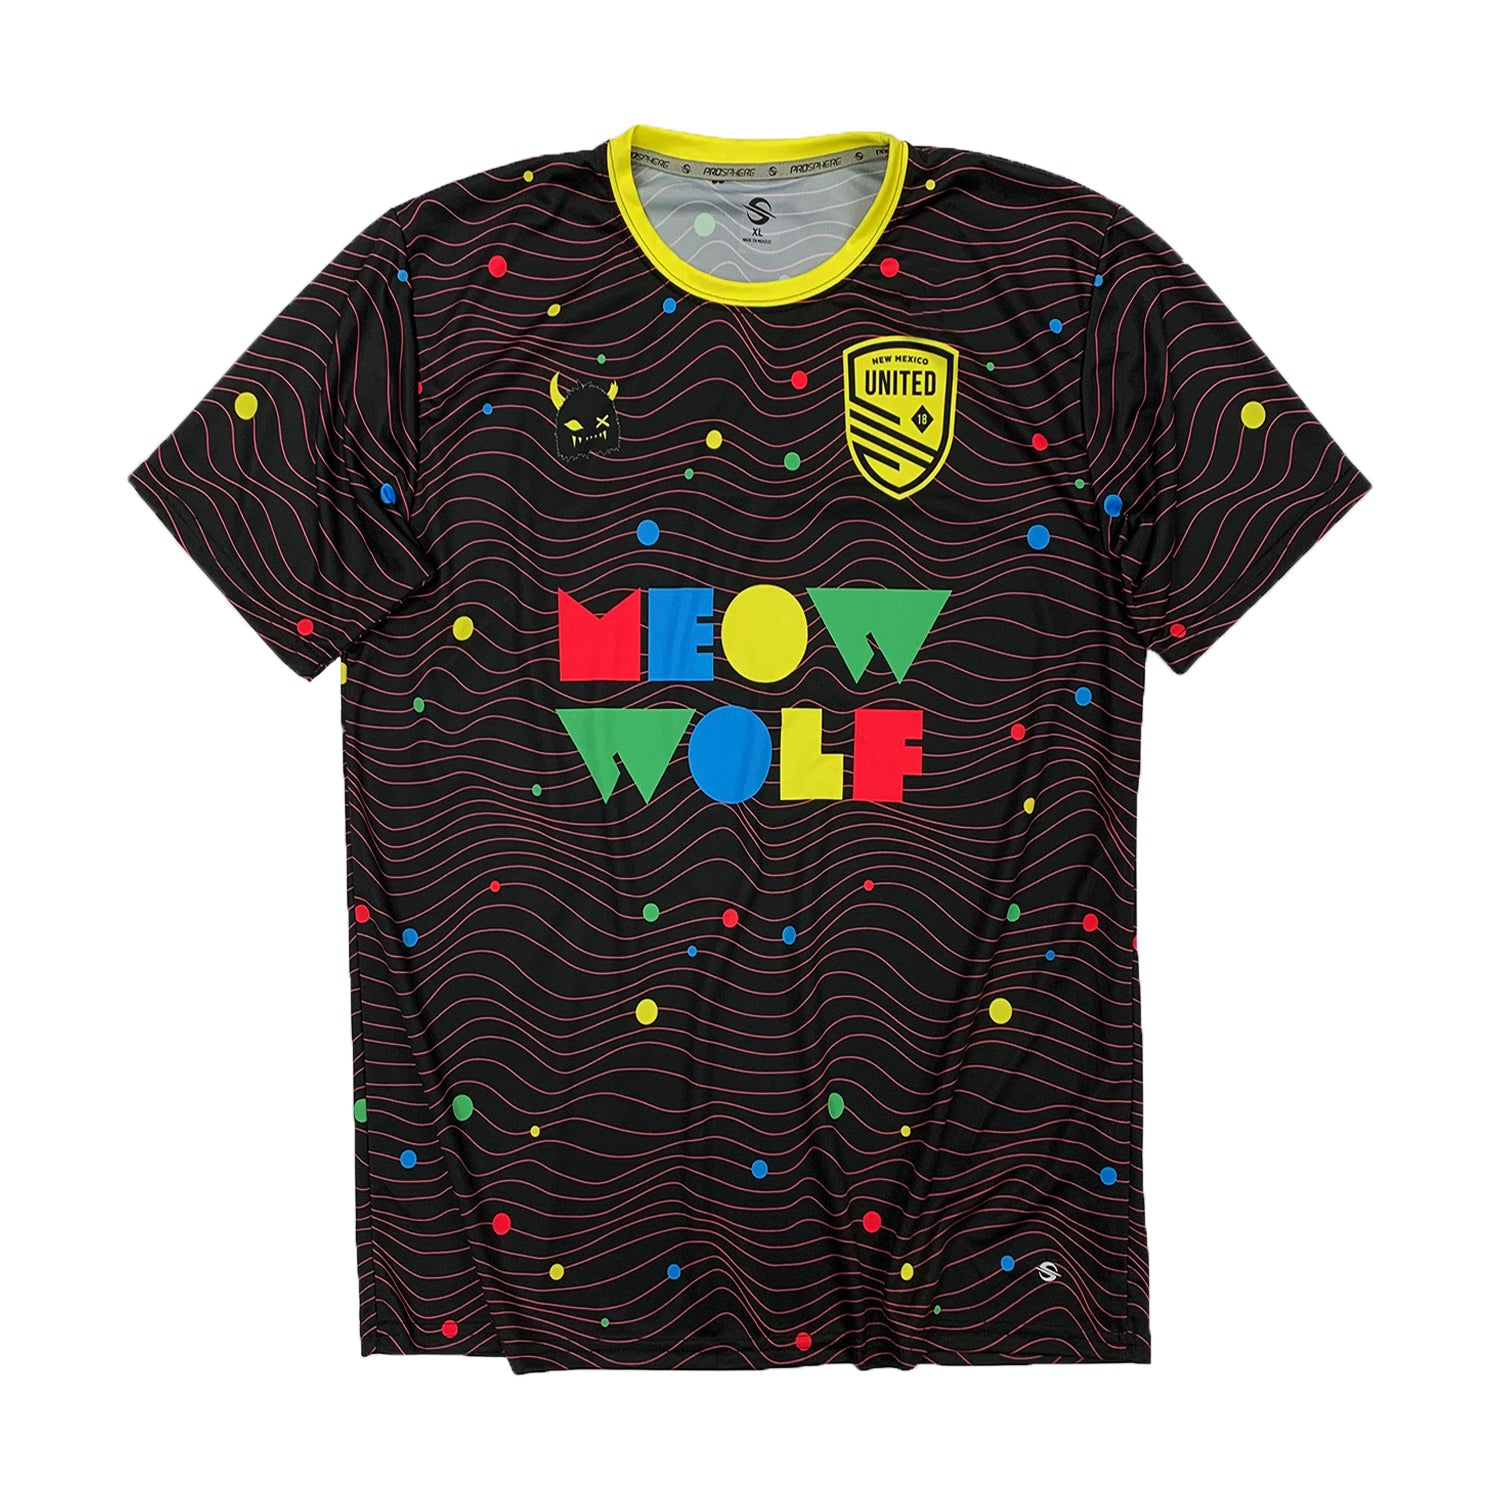 New Mexico United Meow Wolf Specialty Jersey